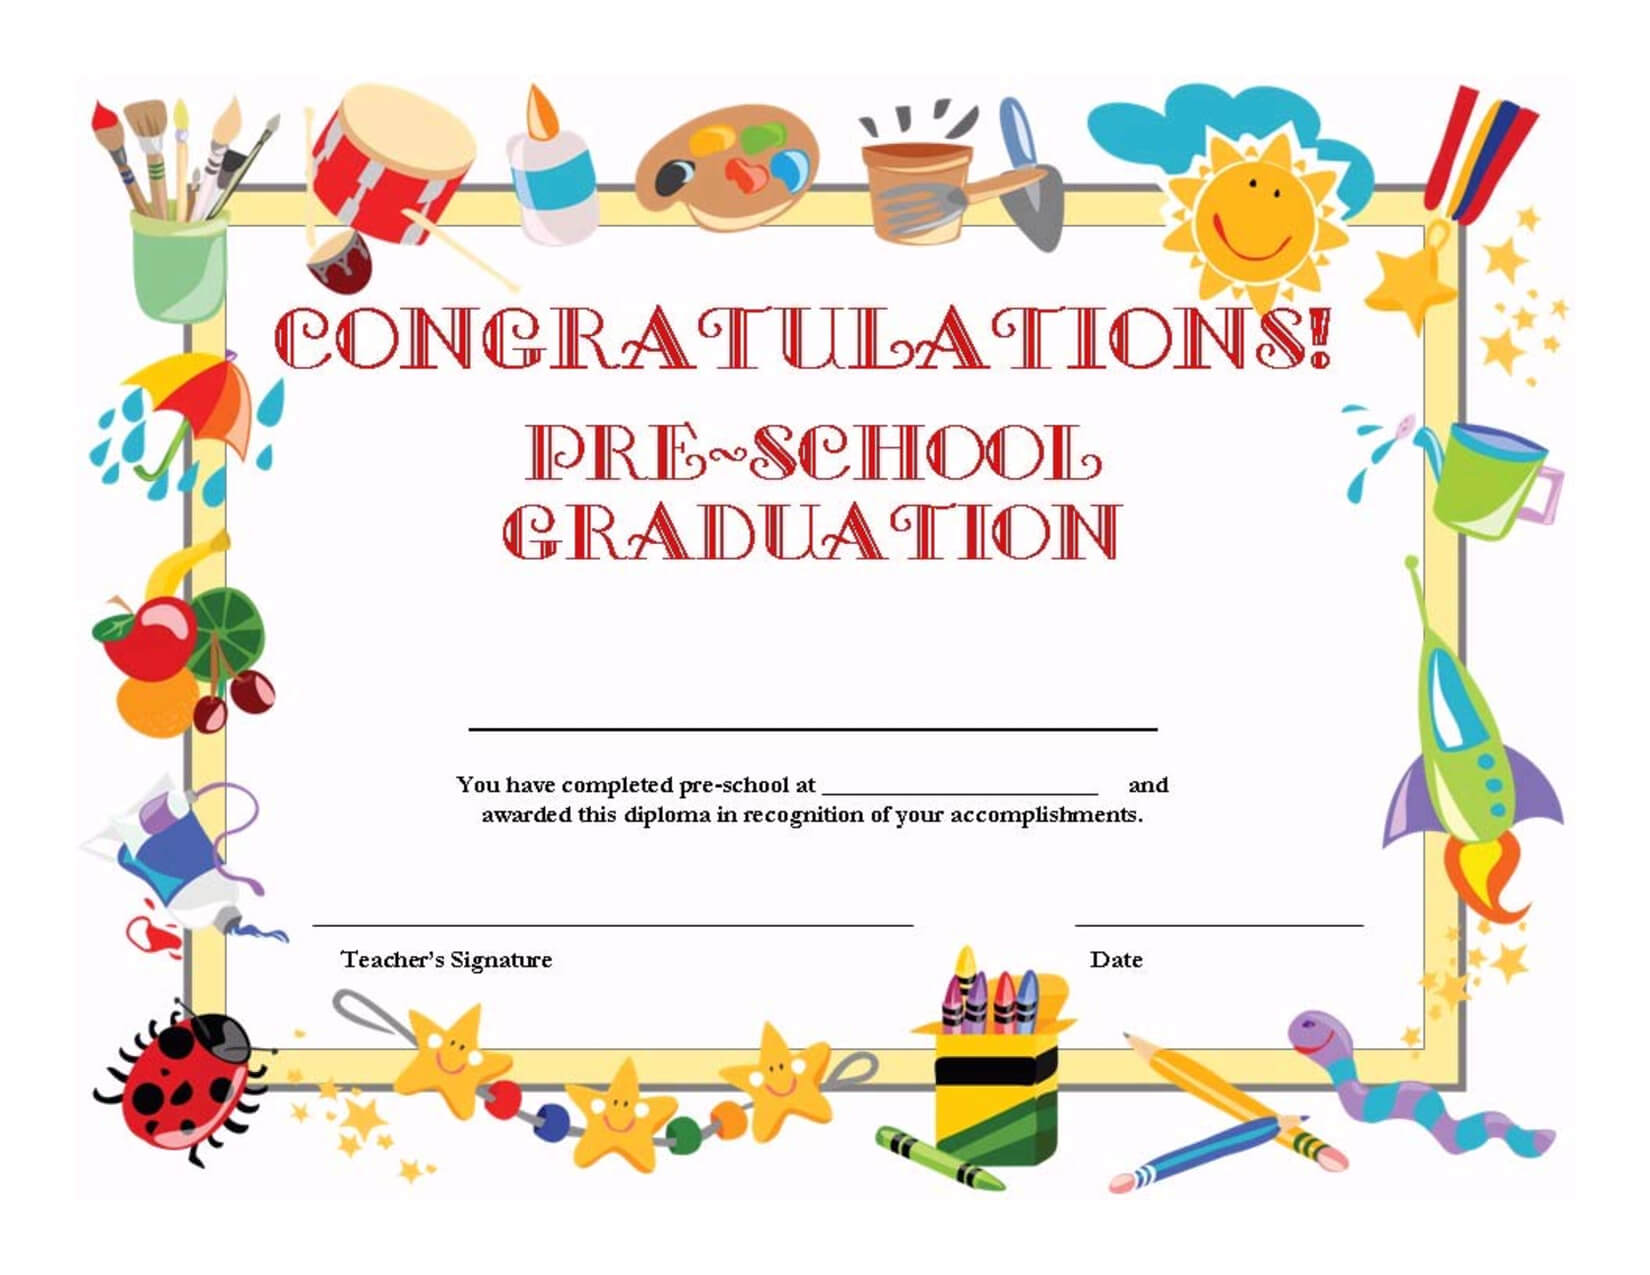 Preschool Graduation Certificate Template Free | Graduation With Certificate Templates For School